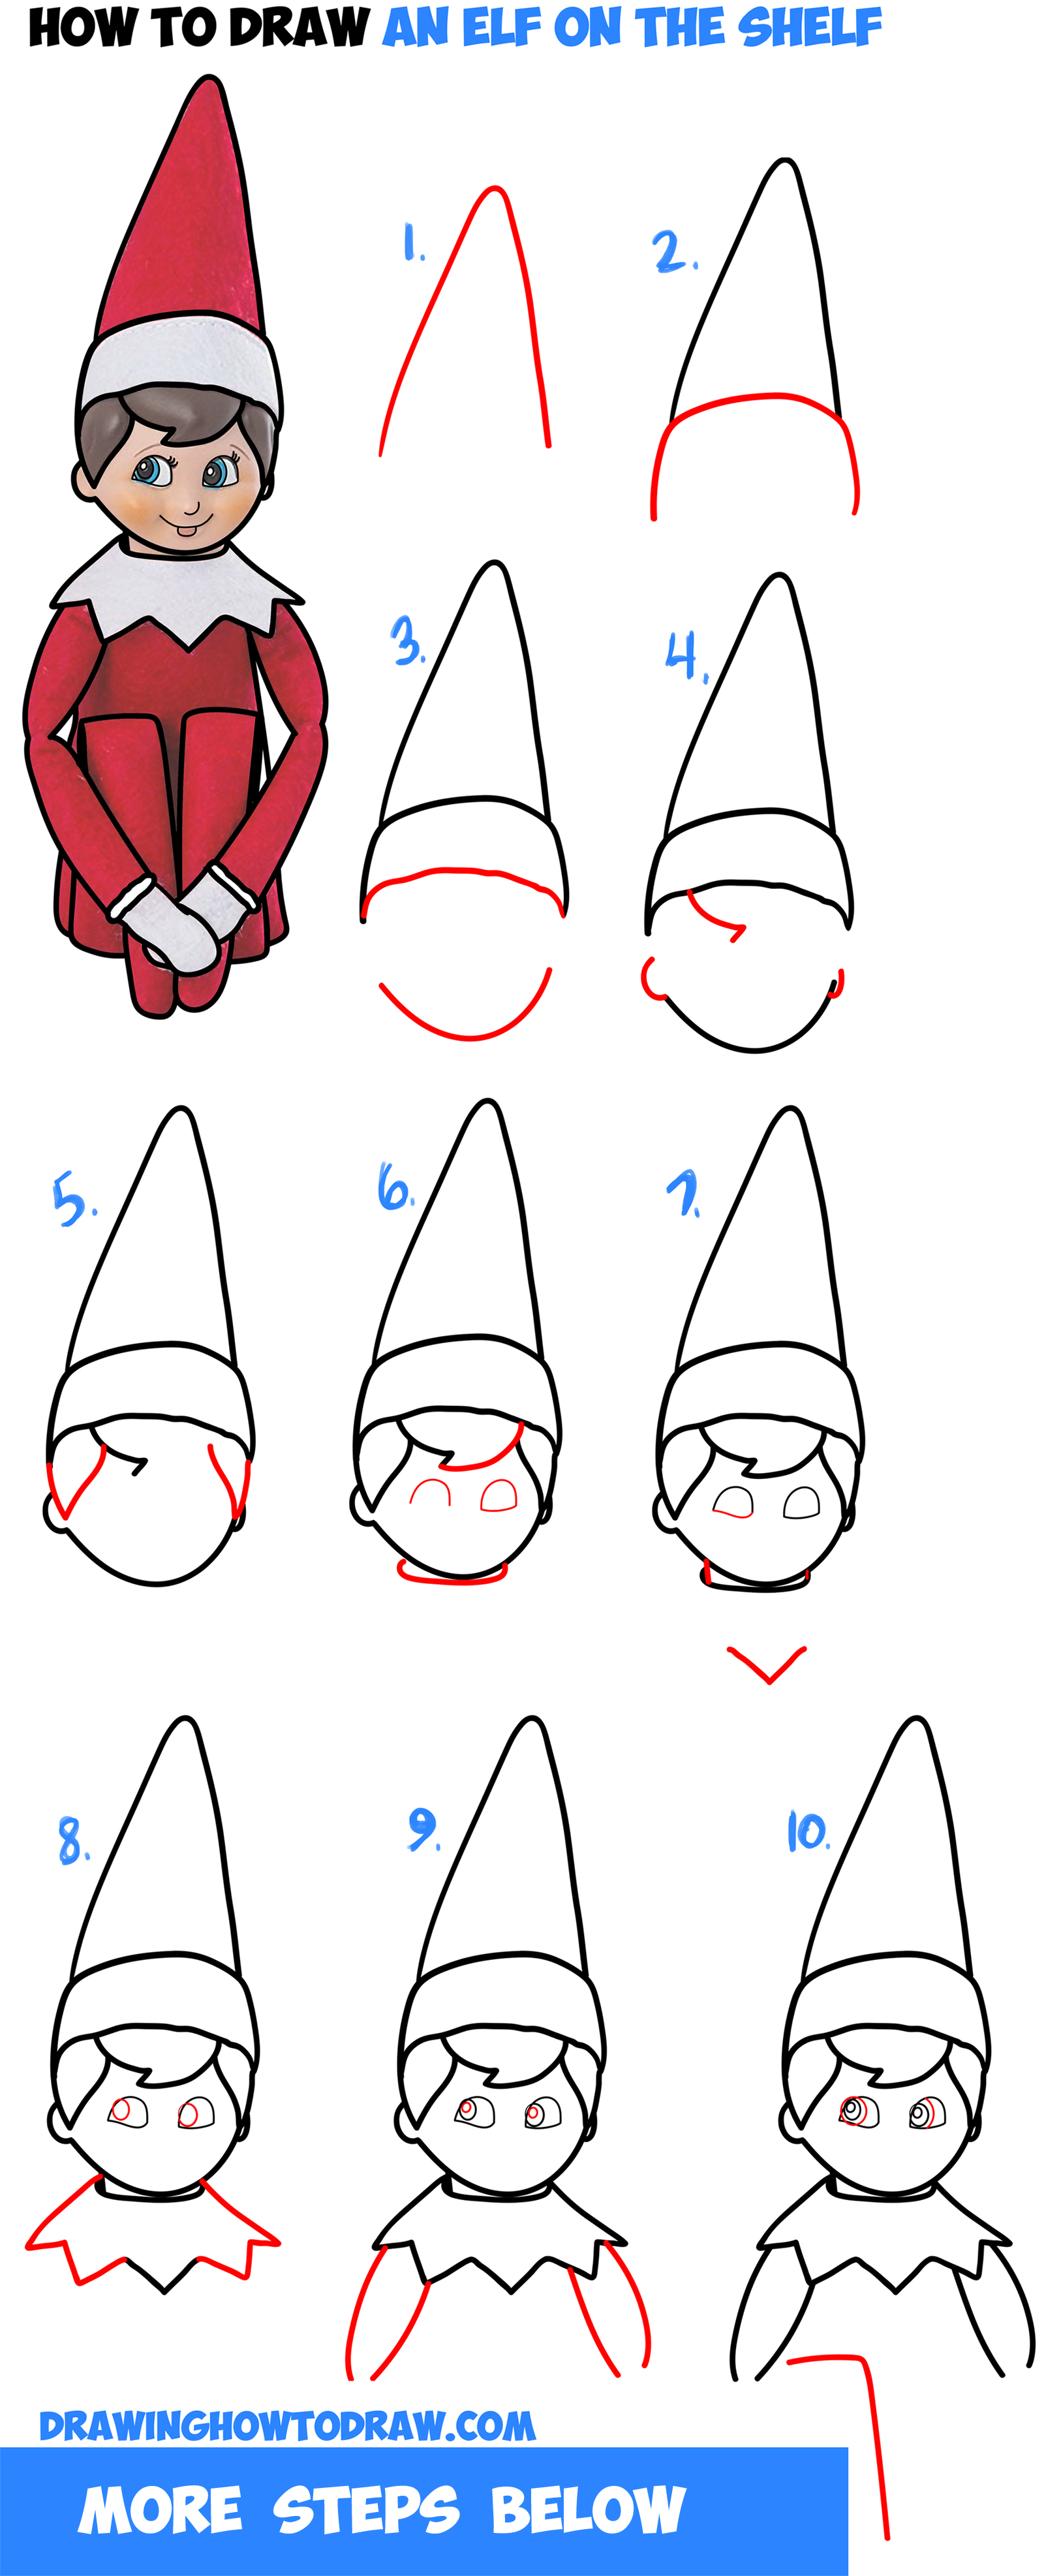 Learn How to Draw The Elf On The Shelf Easy Step by Step Drawing Tutorial for Kids & Beginners